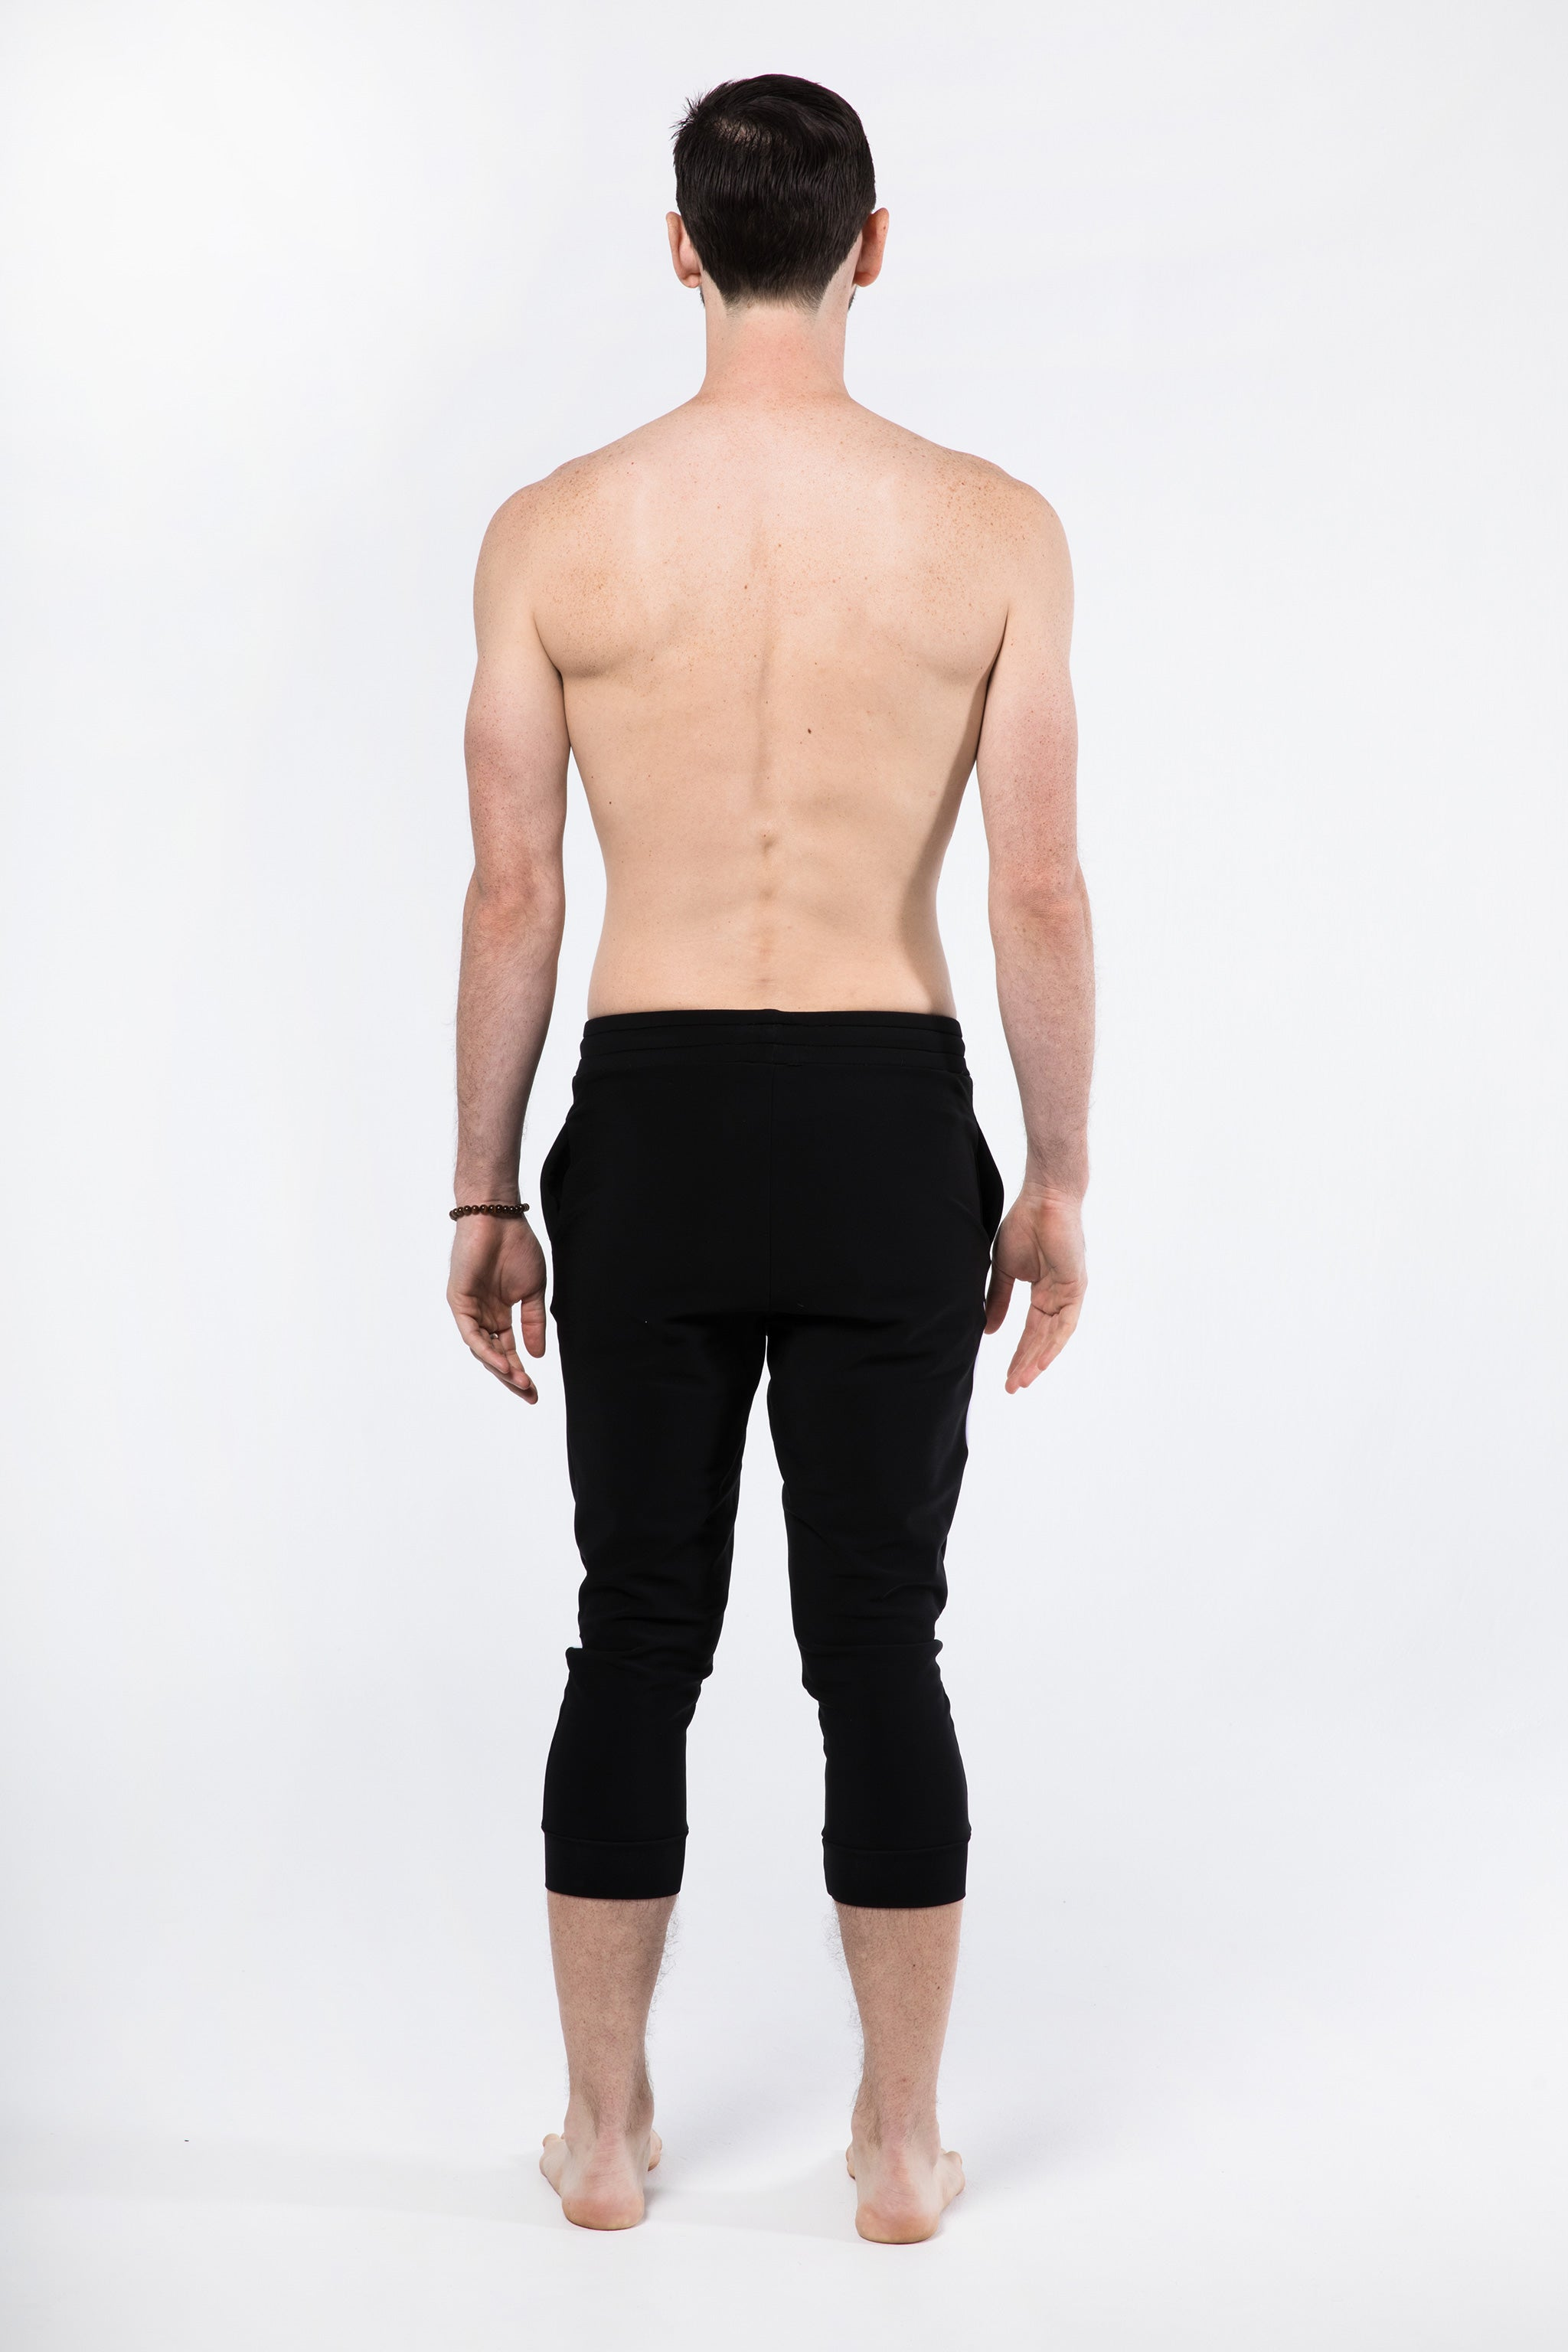 Yoga Pants for Men - Rear View